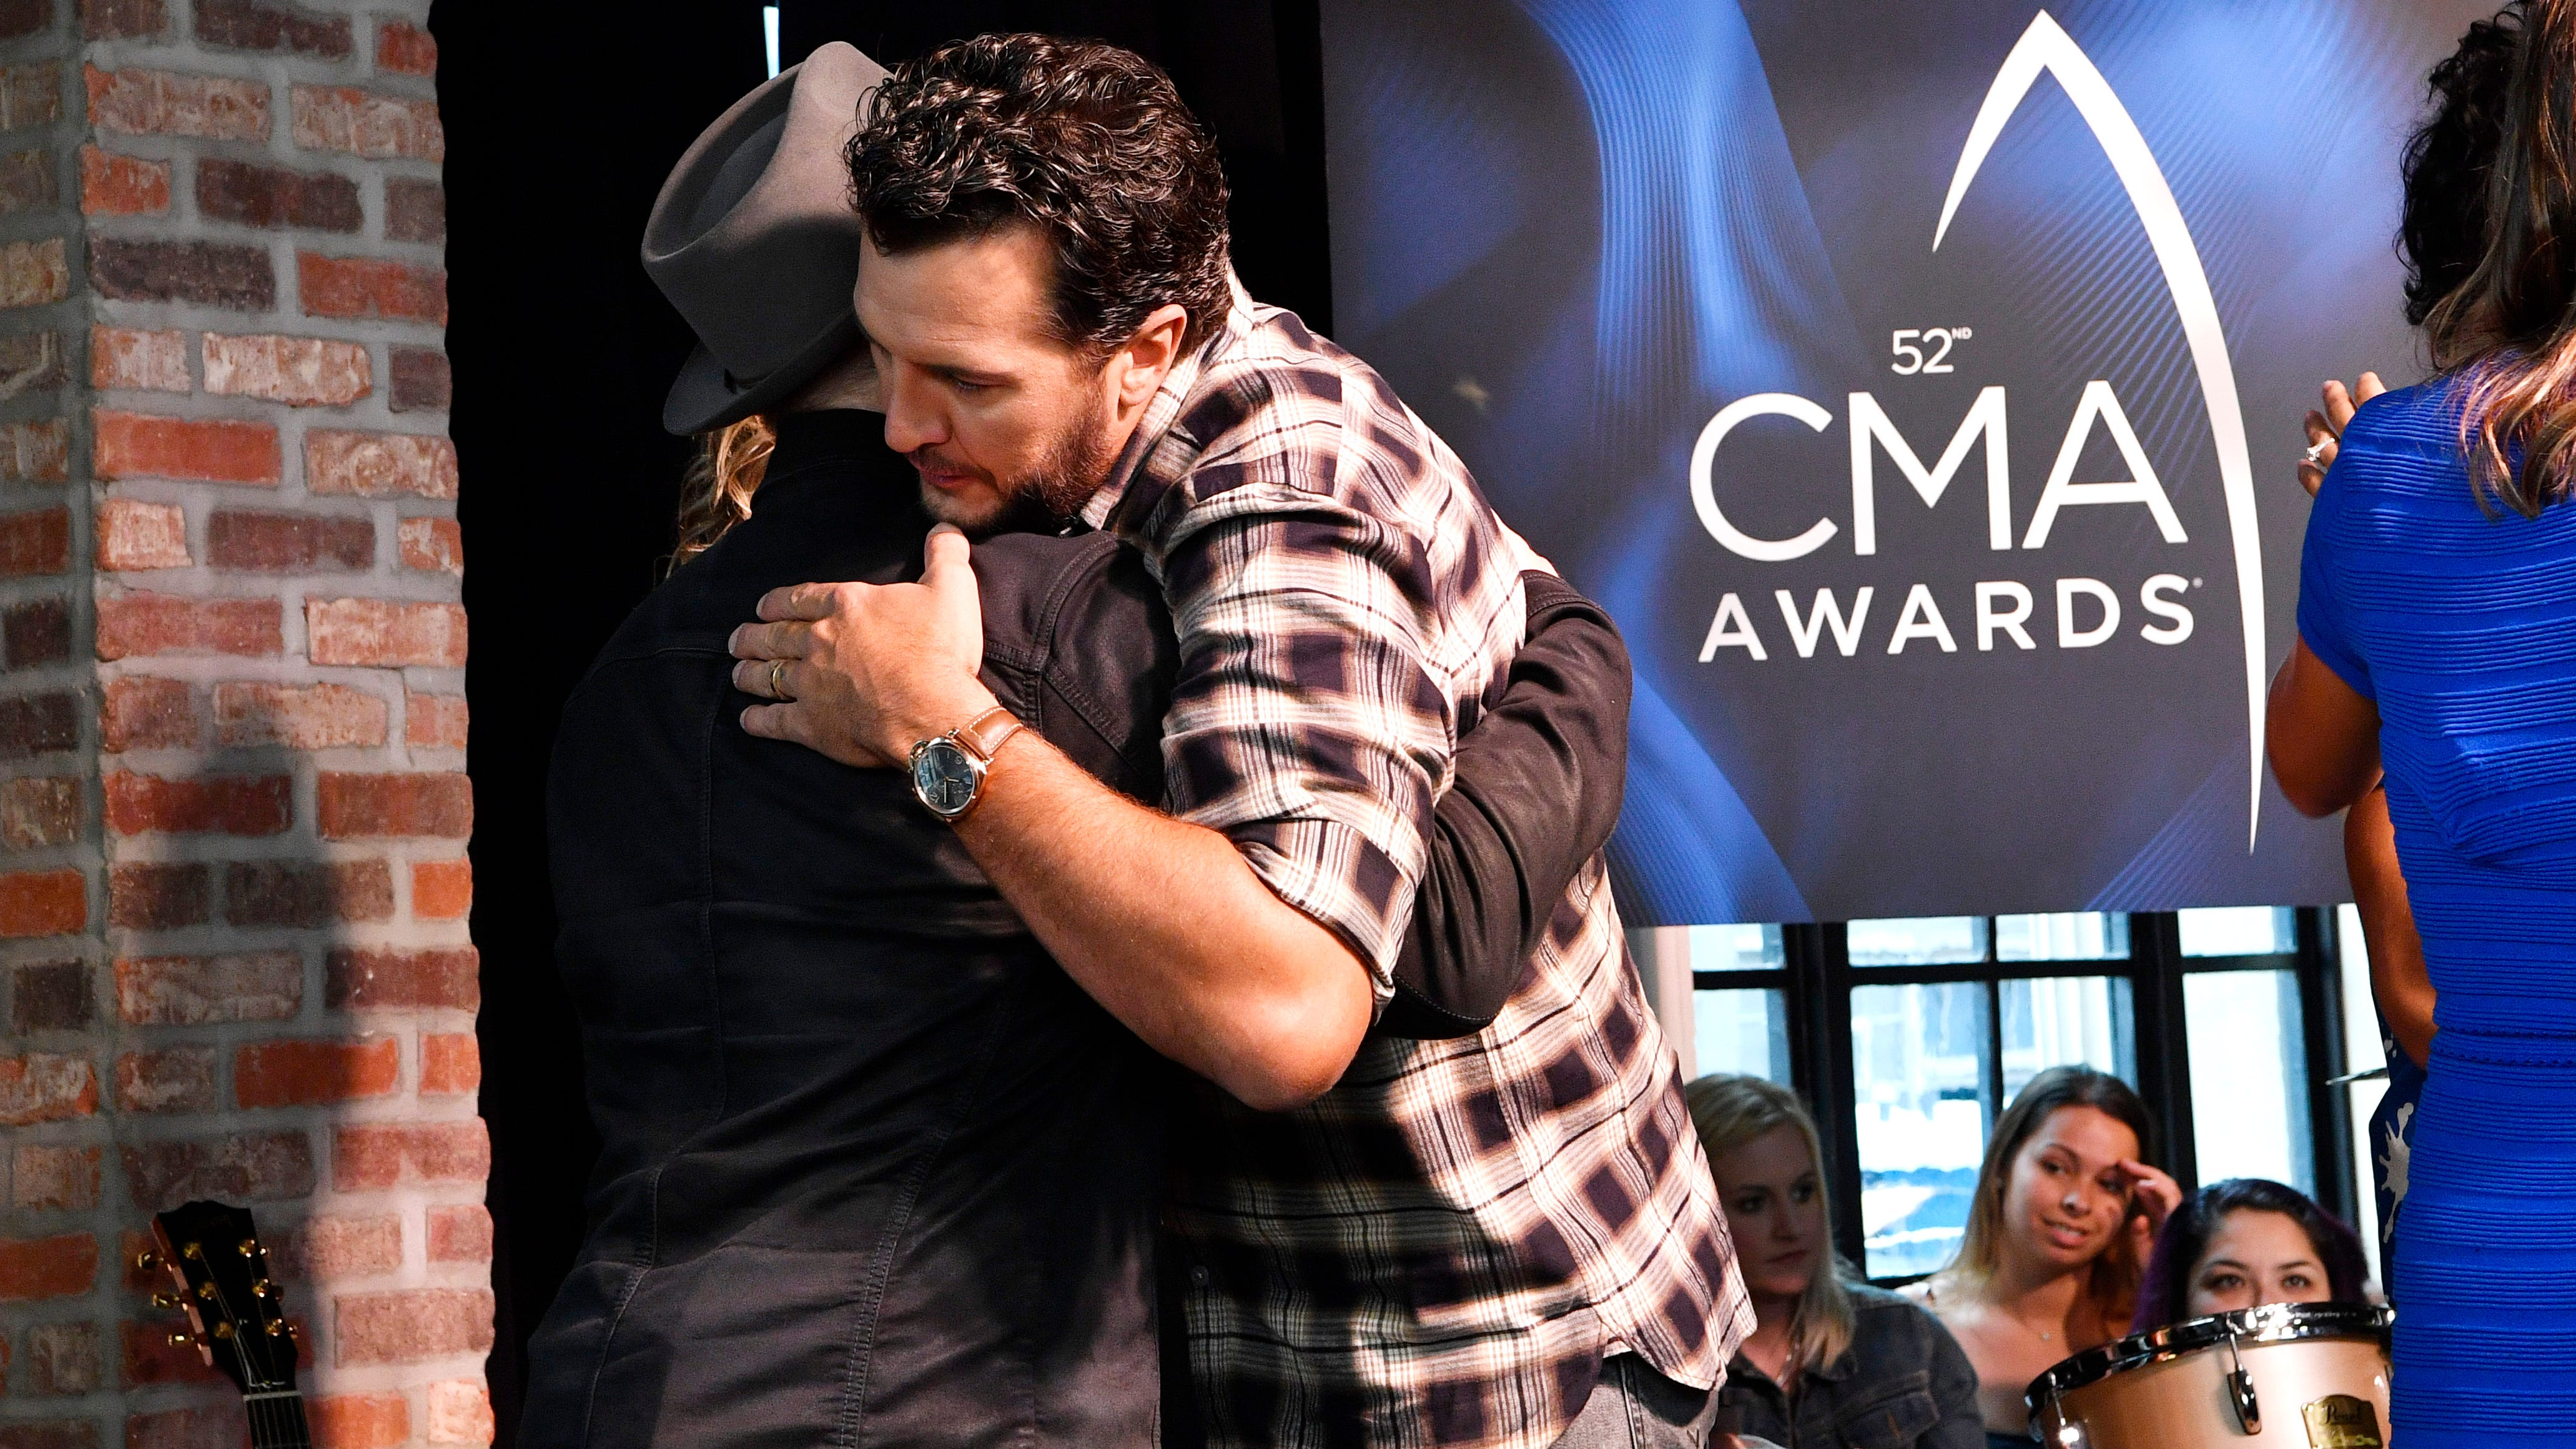 Who do you think will win big at the 2018 CMA Awards this week?